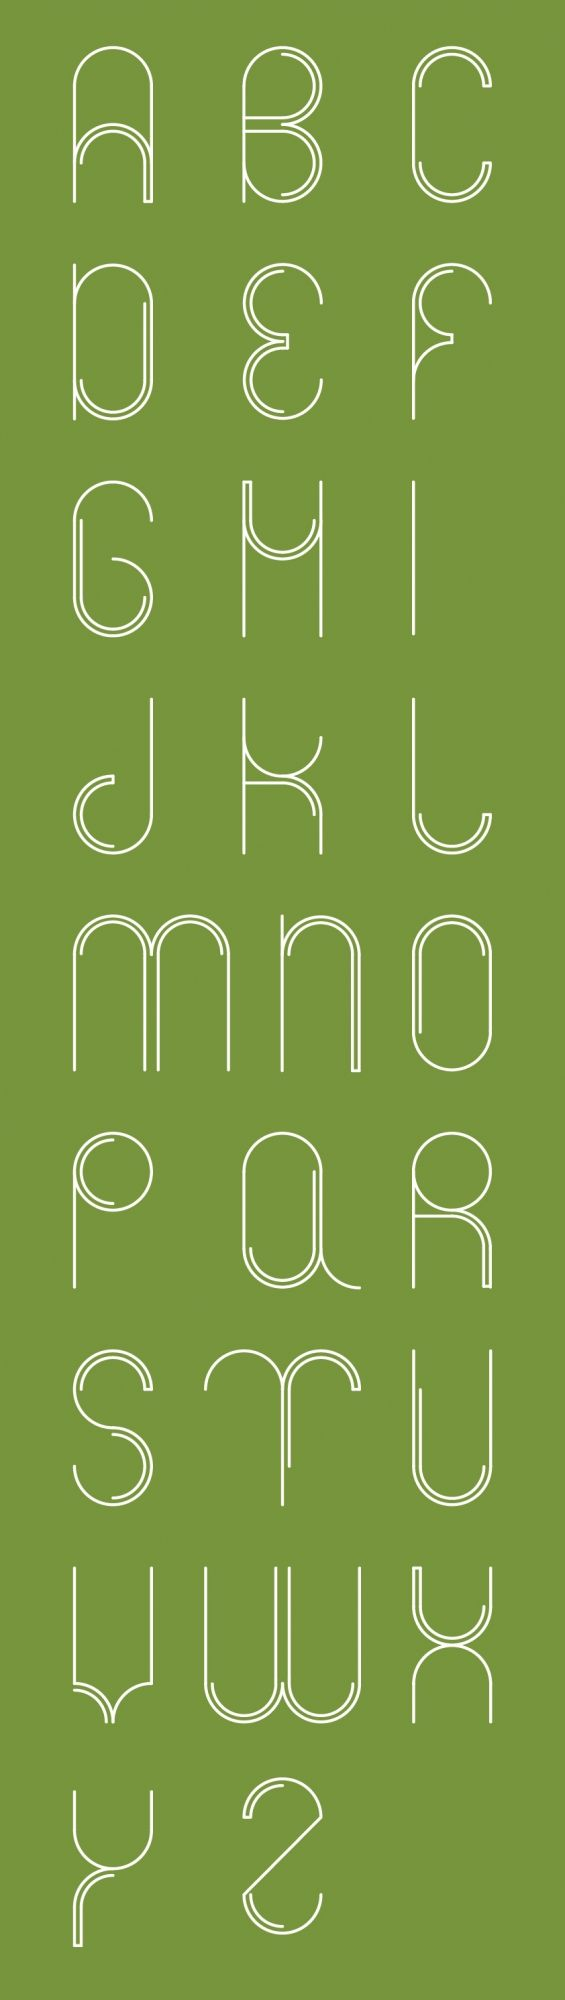 Circle font- What do you think? Is this slightly Art Deco inspired?